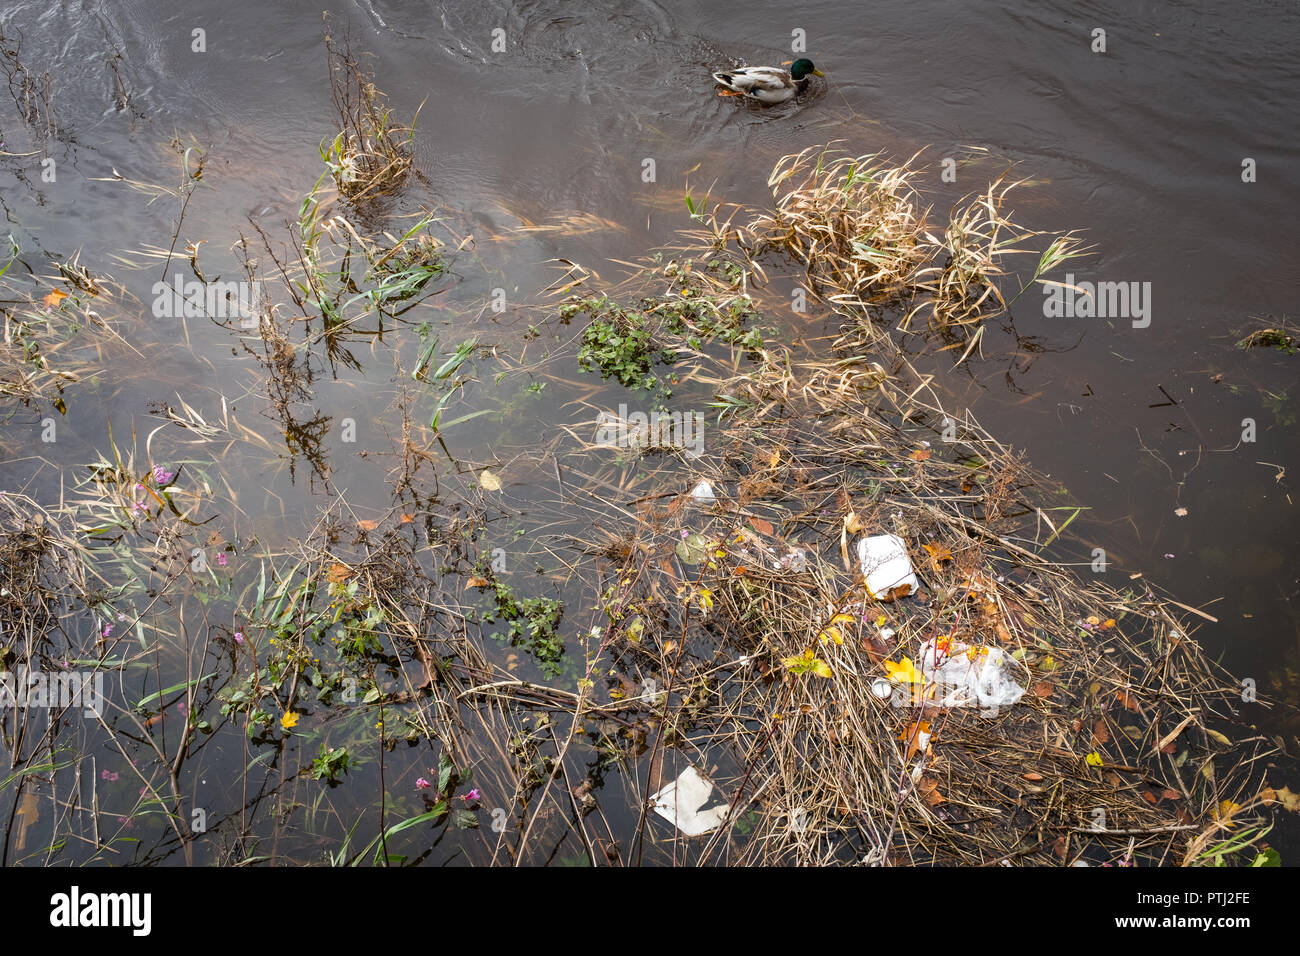 A Mallard duck swims past discarded rubbish floating in the River Nith, Dumfries, Scotland. - Stock Image